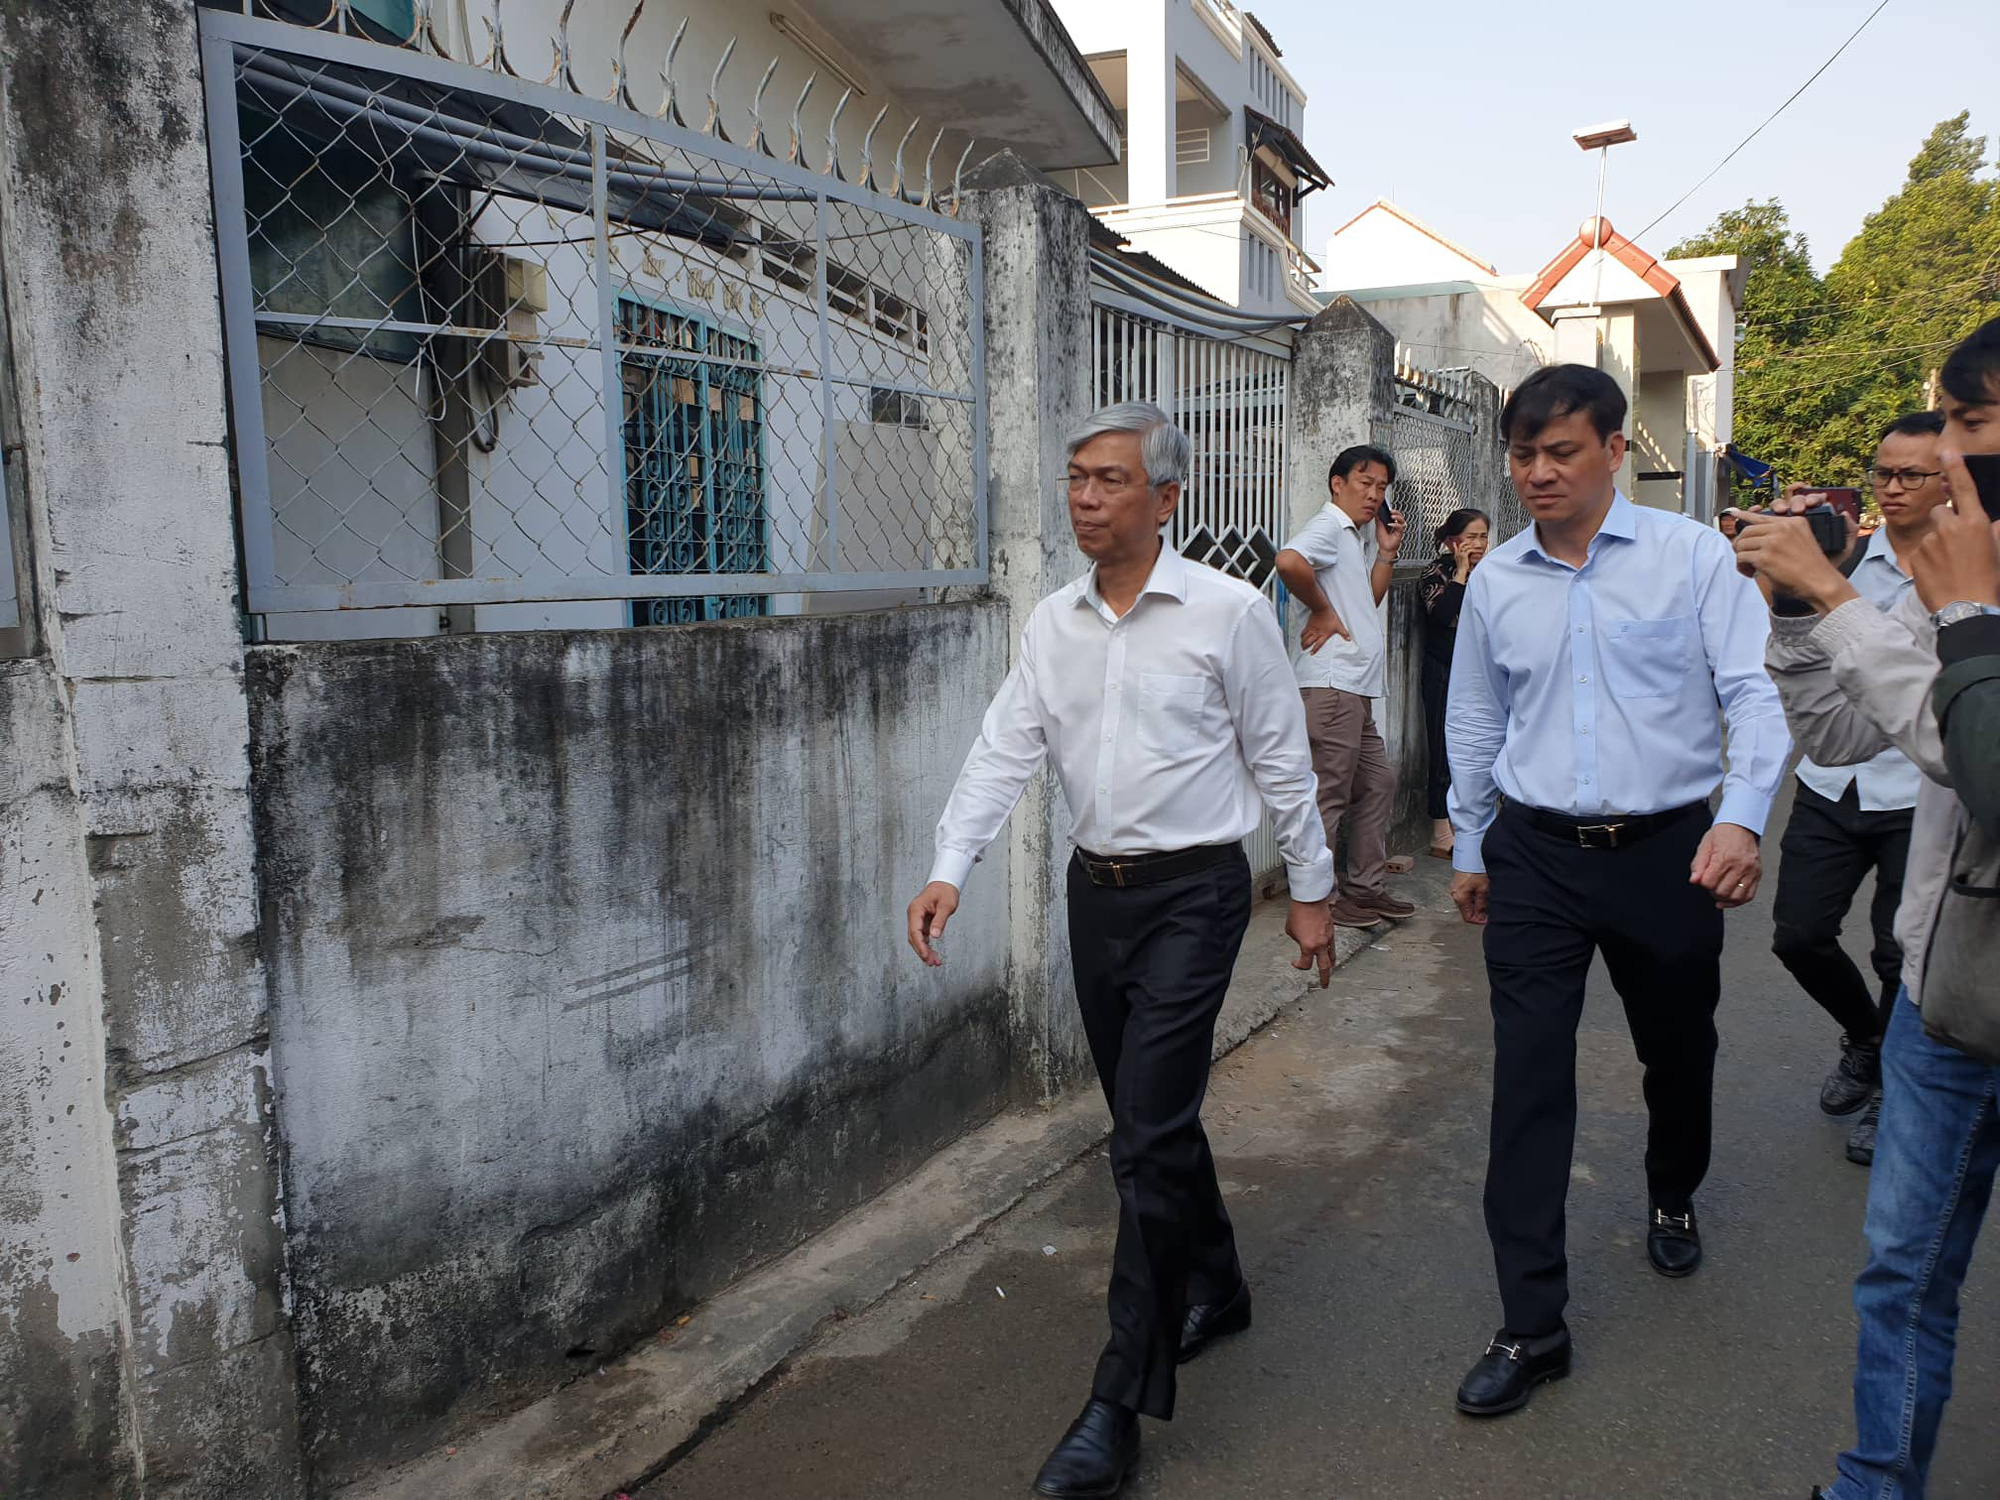 Ho Chi Minh City Deputy Chairman Vo Van Hoan (L) and the municipal Construction Department Director Le Hoa Binh arrive at the site of a house fire that killed five family members on Do Xuan Hop Street in District 9, Ho Chi Minh City on January 21, 2020. Photo: Minh Hoa / Tuoi Tre